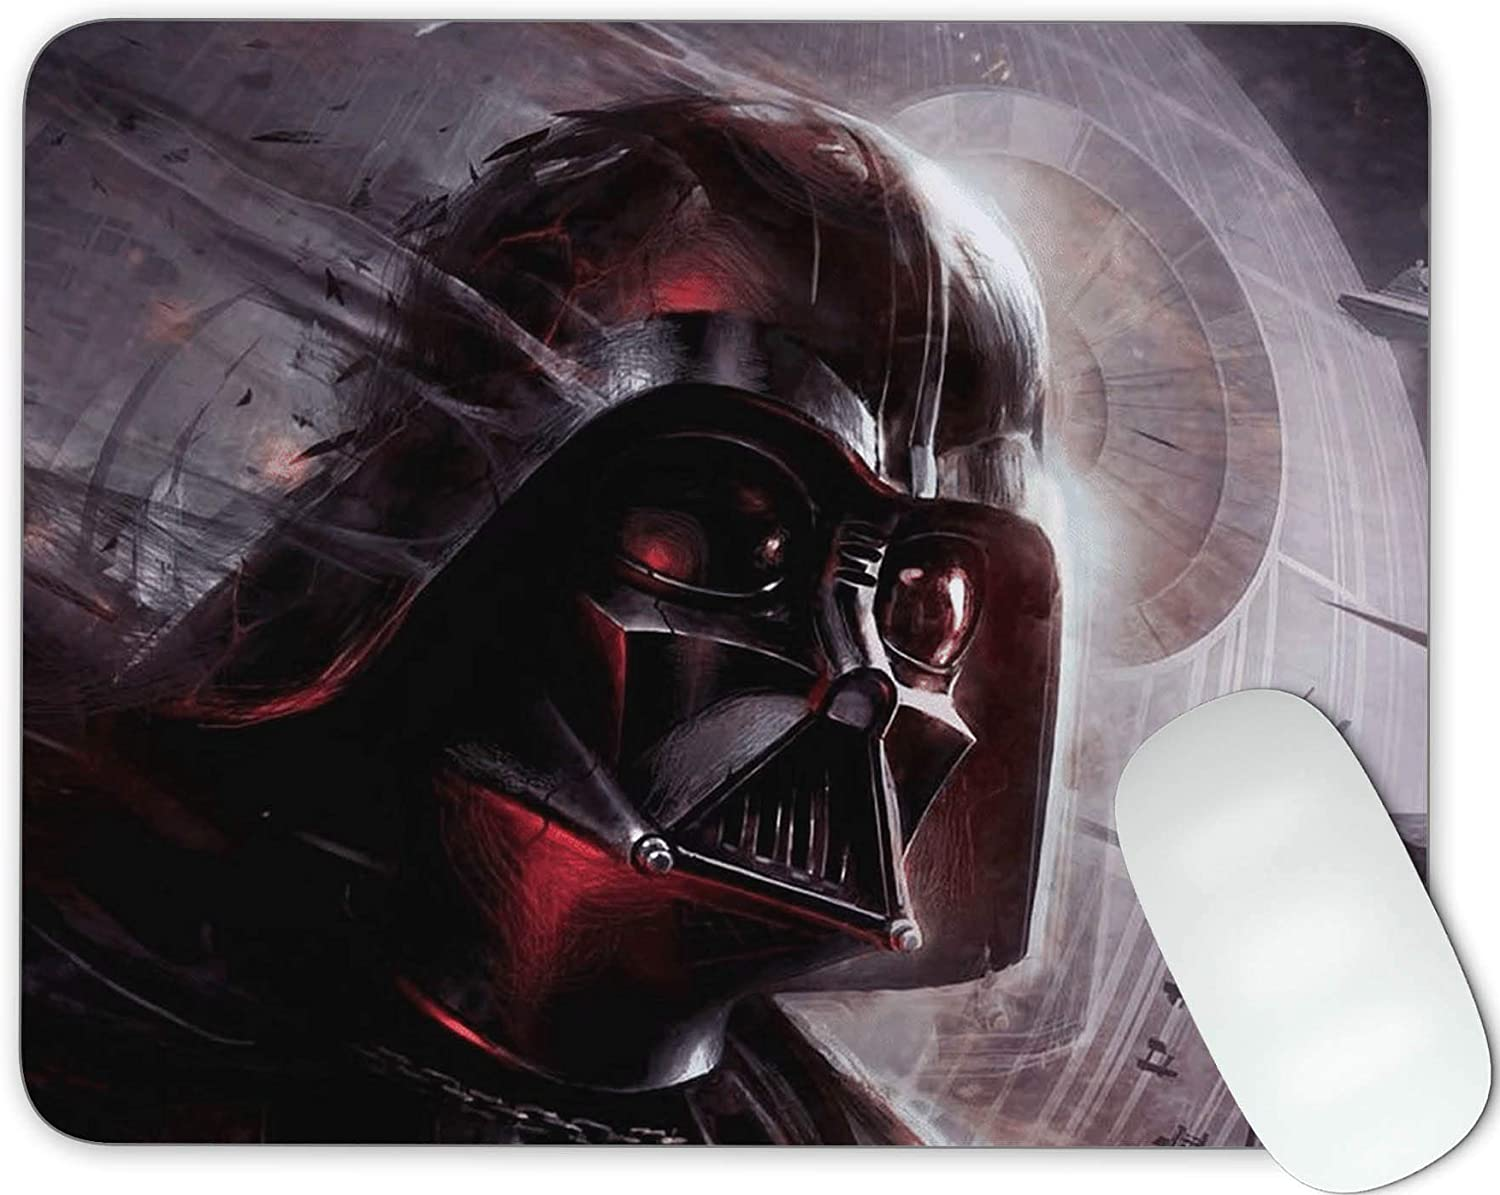 Star Wars-Darth Vader Mouse Pad Office Mouse Pad Gaming Mouse Pad Mat Mouse Pad